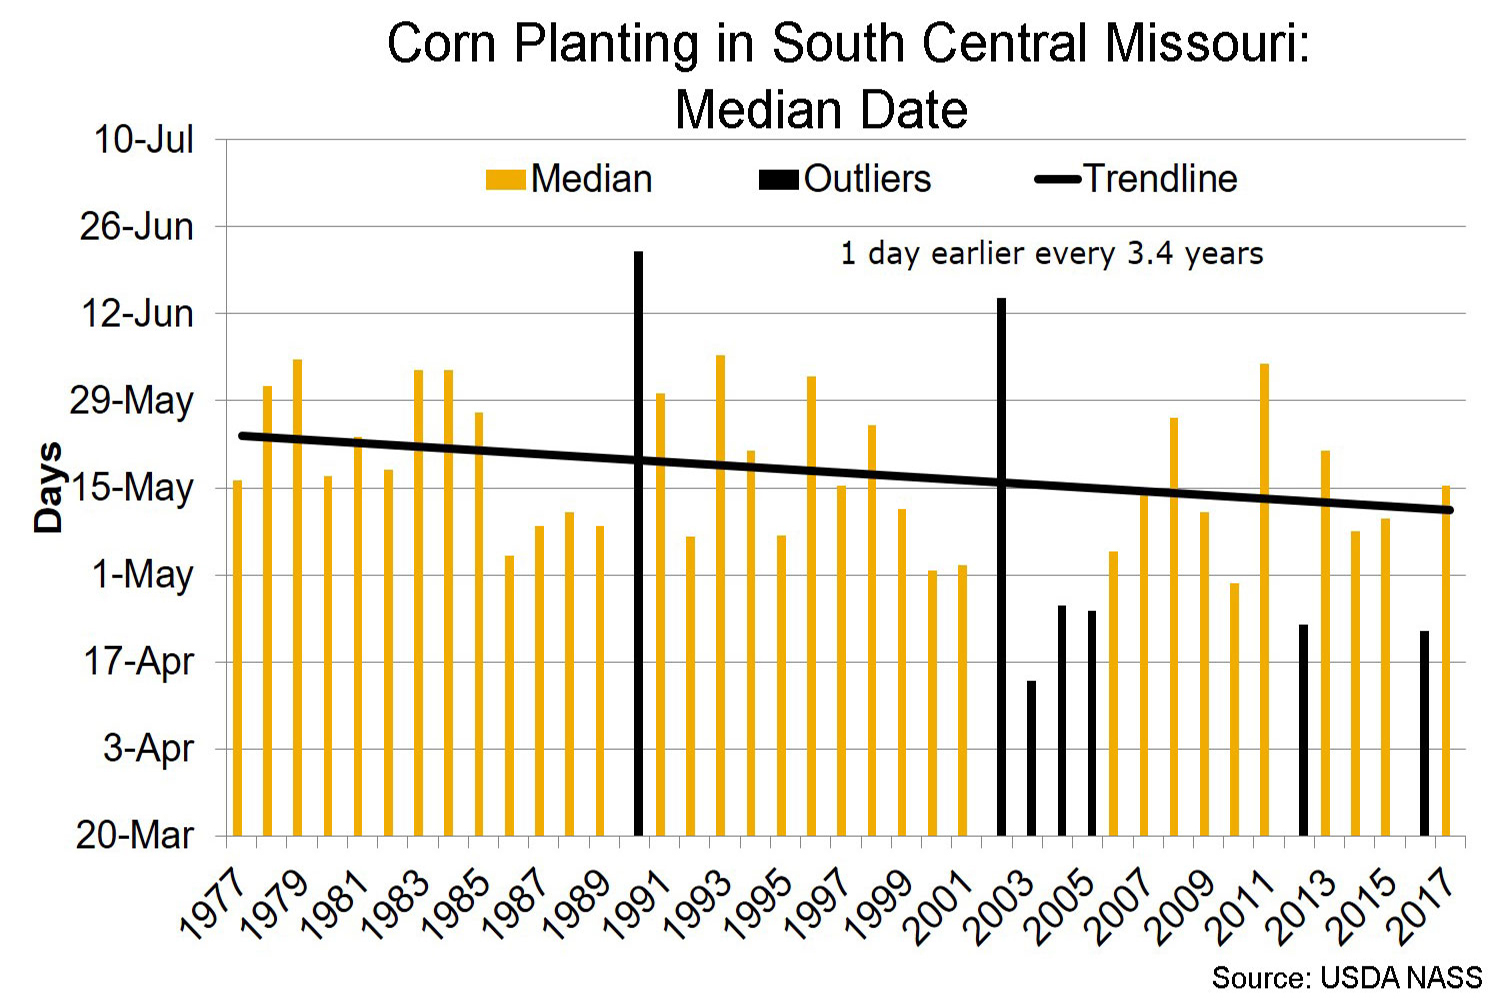 Corn planting in south central Missouri median date chart